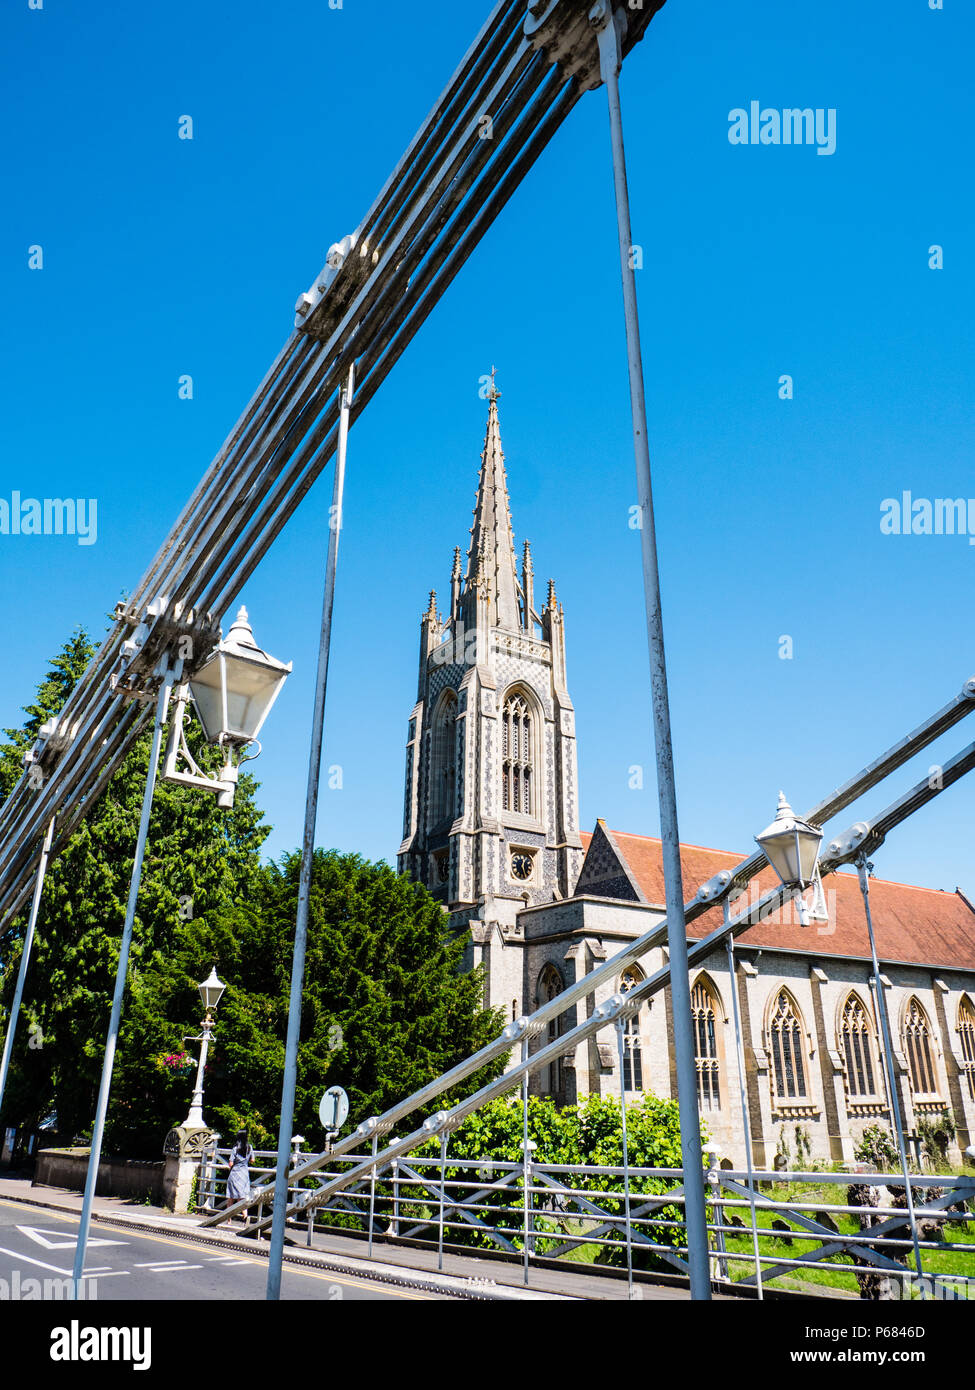 Marlow Bridge suspension bridge, Across River Thames Designed by William Tierney Clark, with All Saints Church, Marlow, Buckinghamshire, England, UK, - Stock Image